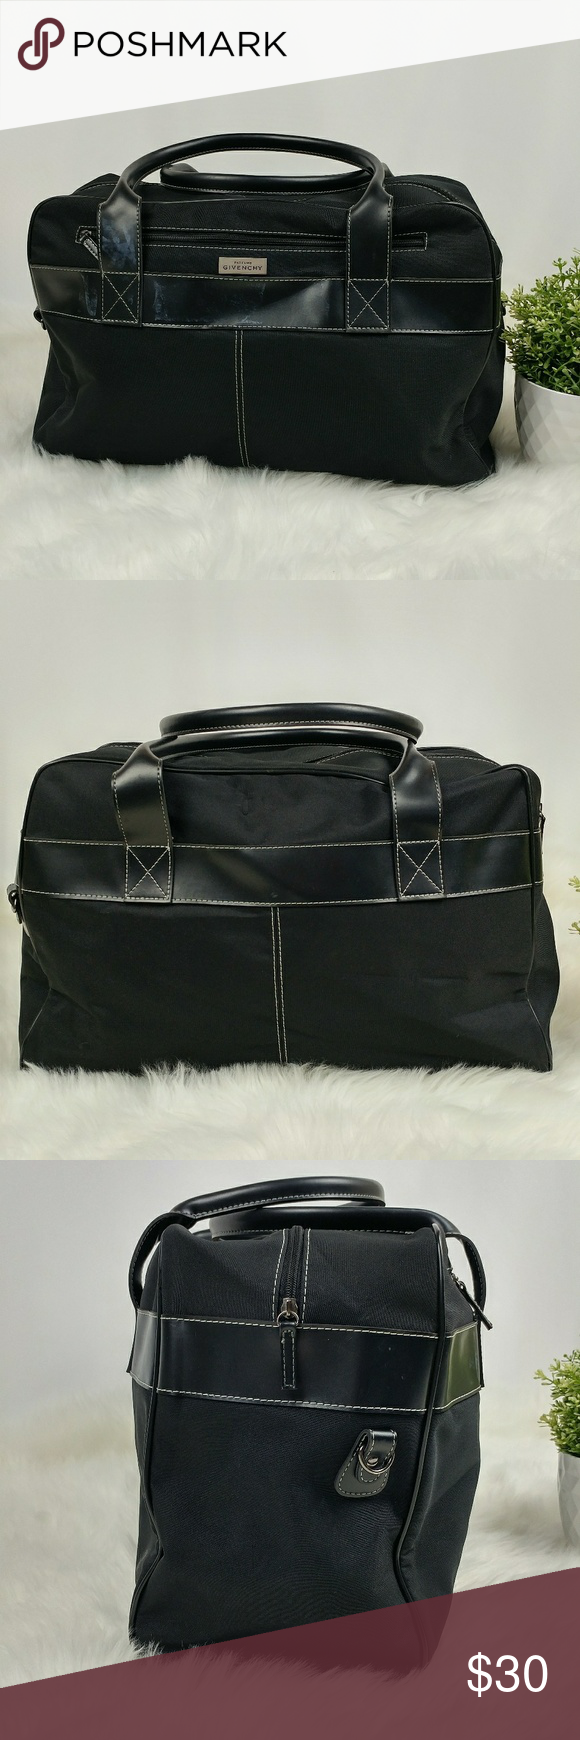 842bbcf3d572 GIVENCHY Parfums large black duffle bag travel bag GIVENCHY Parfums large black  duffle bag